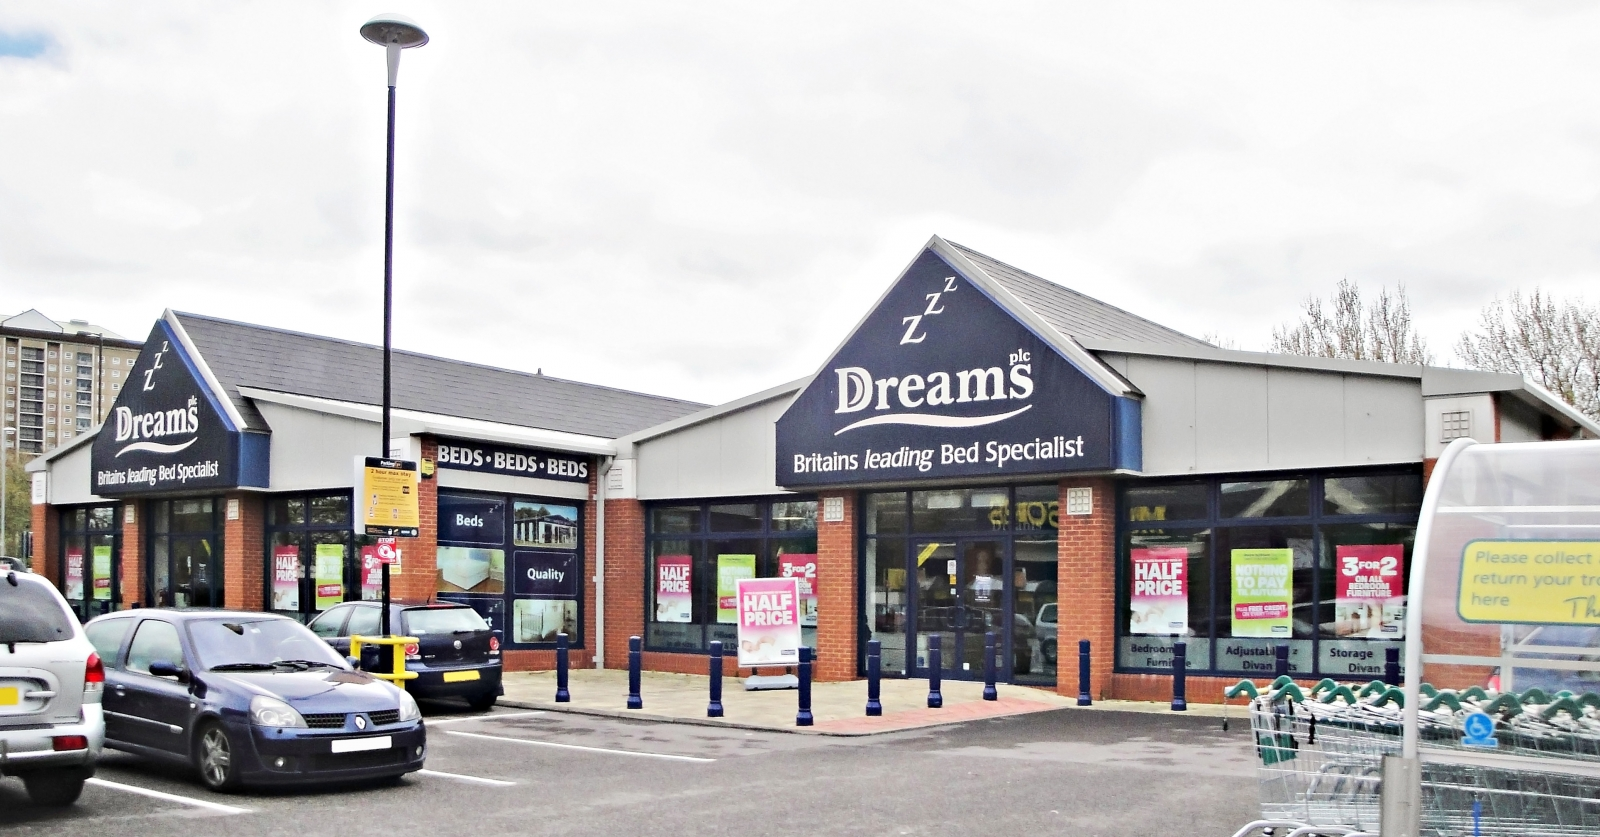 Dreams bed retailer